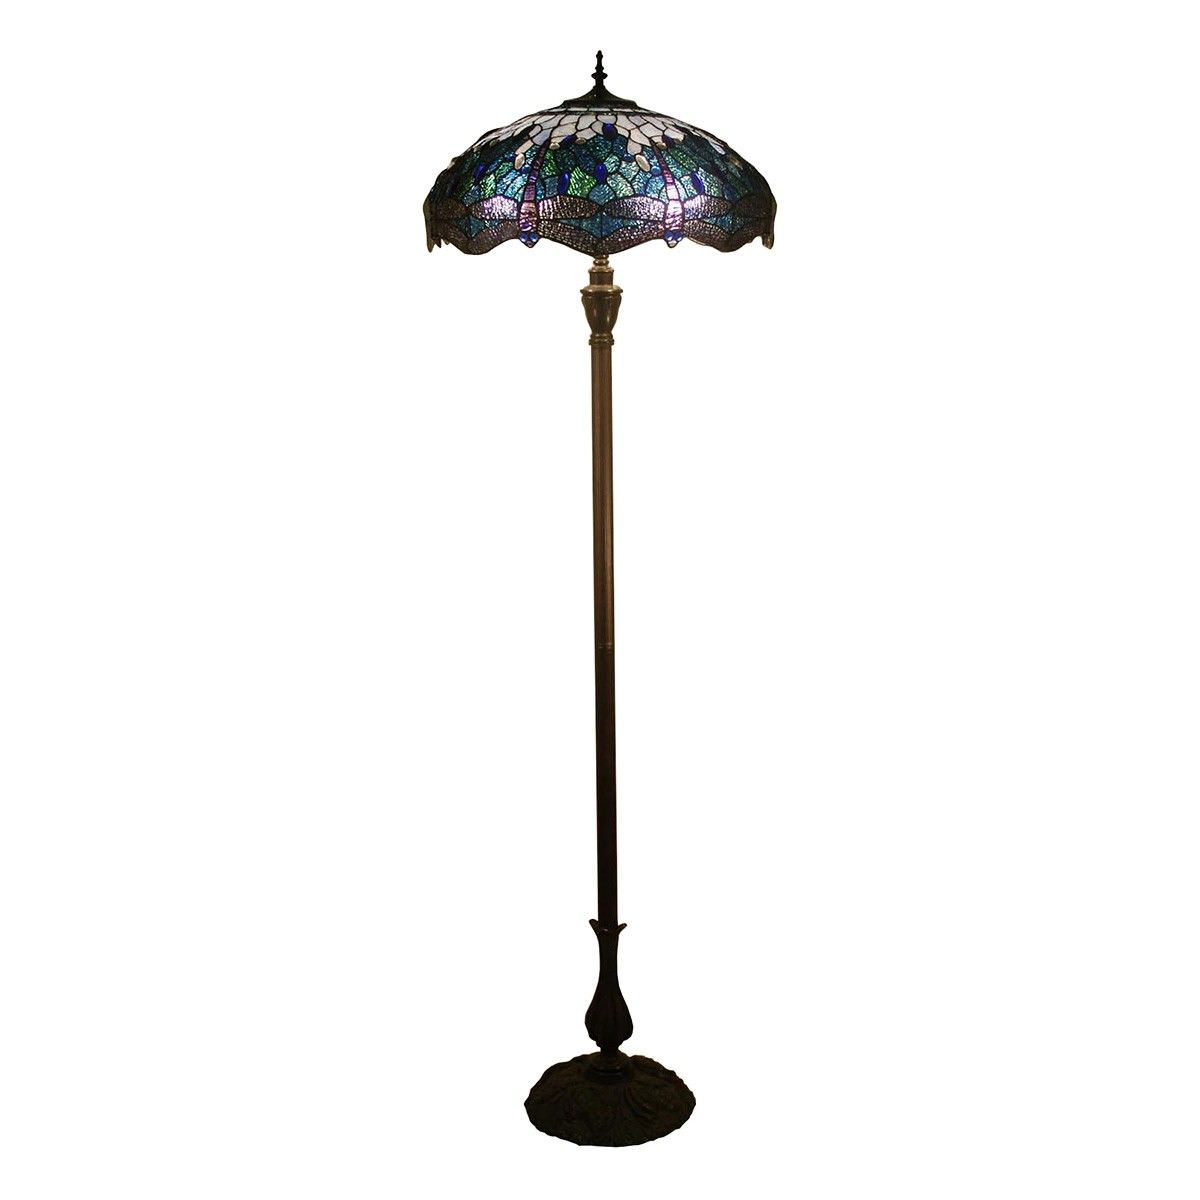 Blue Dragonfly Tiffany Style Stained Glass Floor Lamp